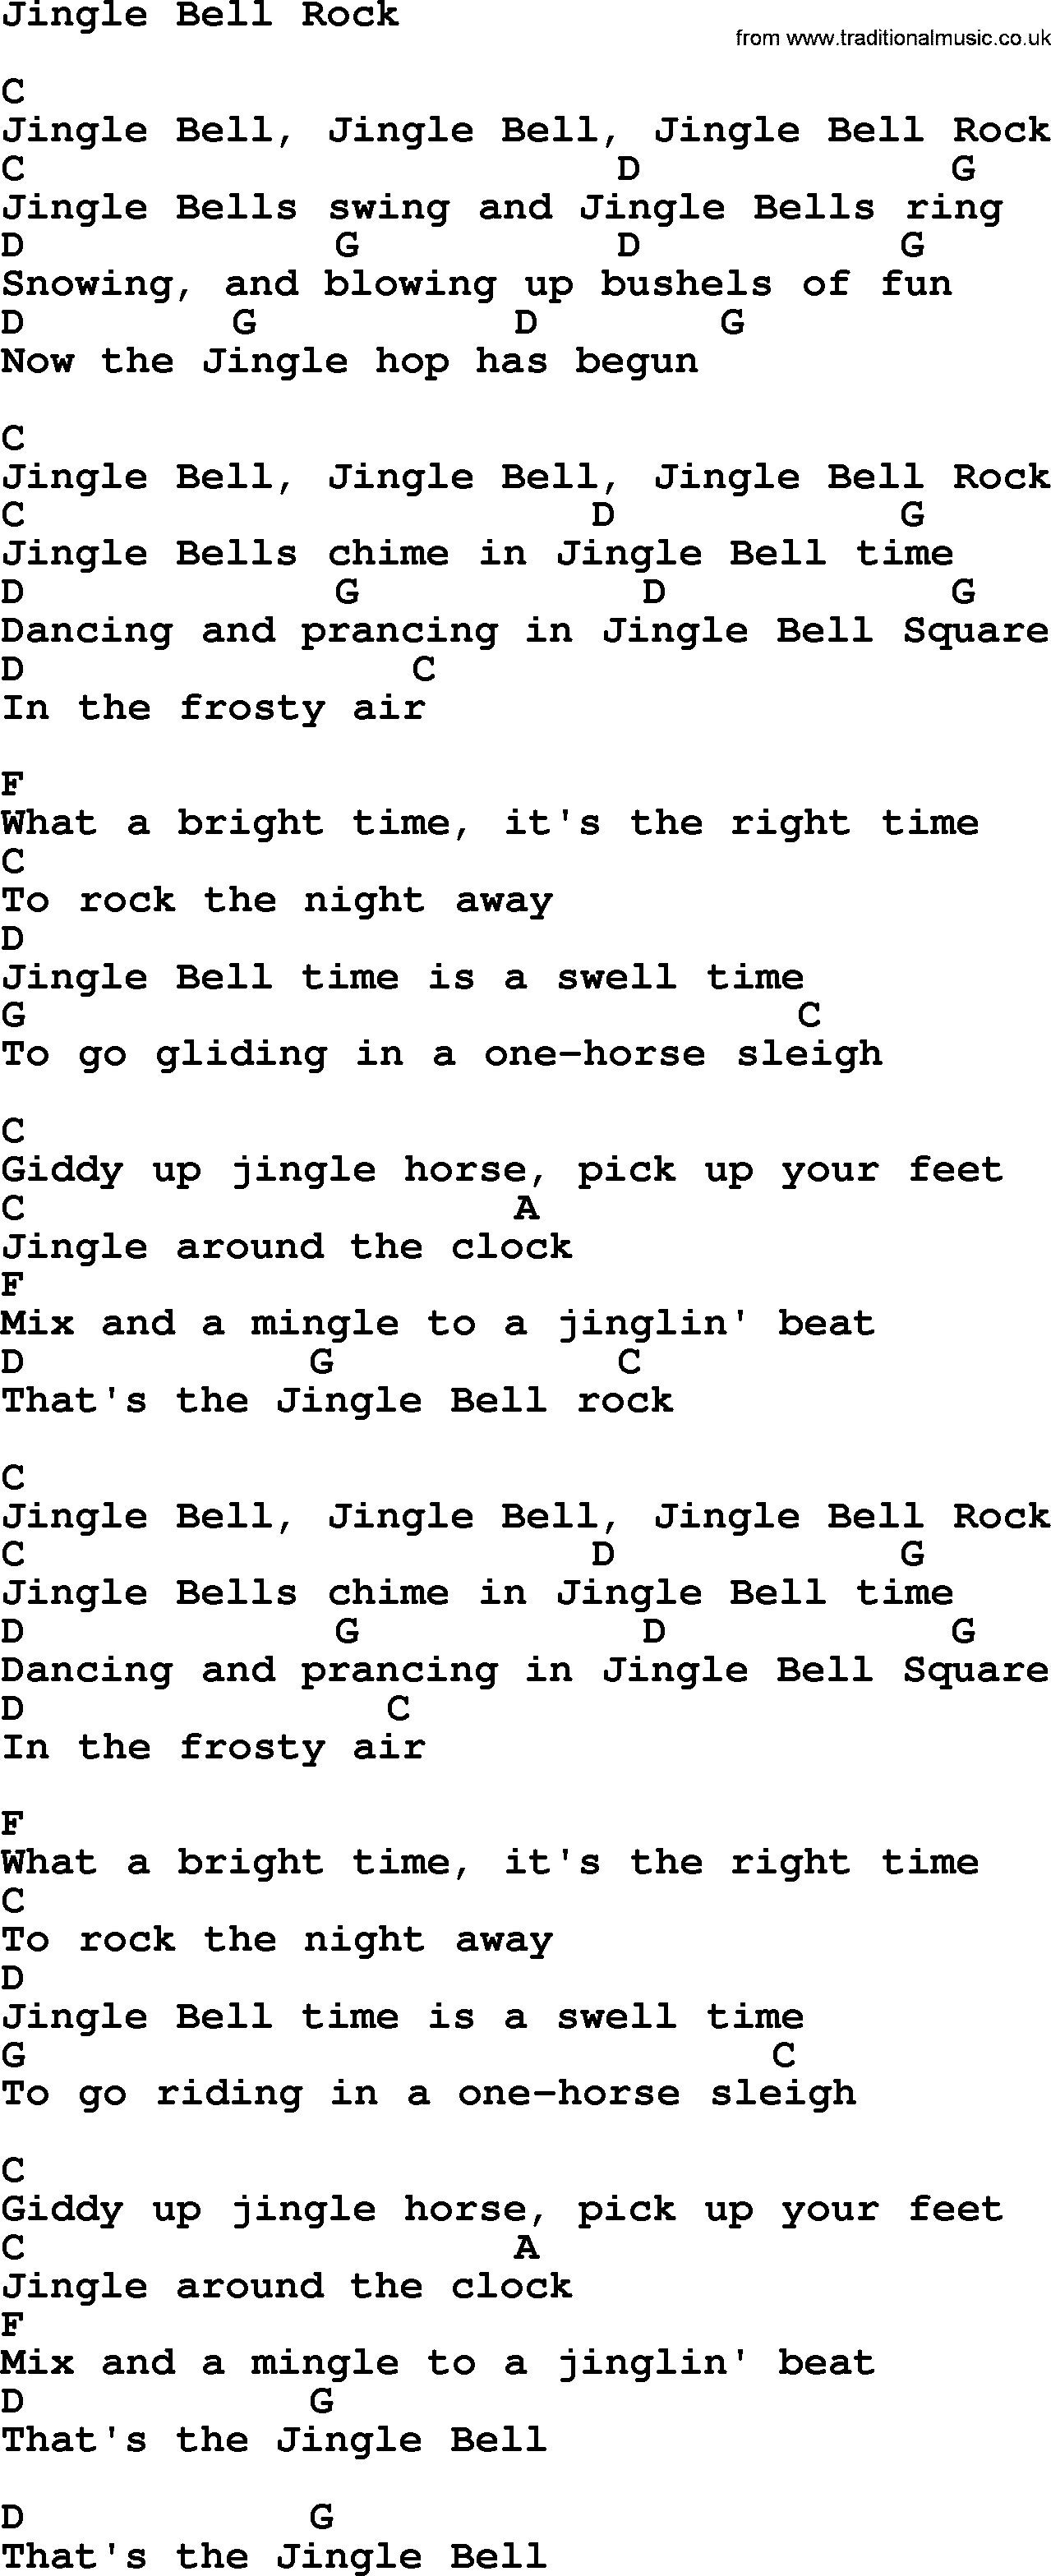 Weihnachtslieder Rock.Jingle Bell Rock By George Strait Lyrics And Chords